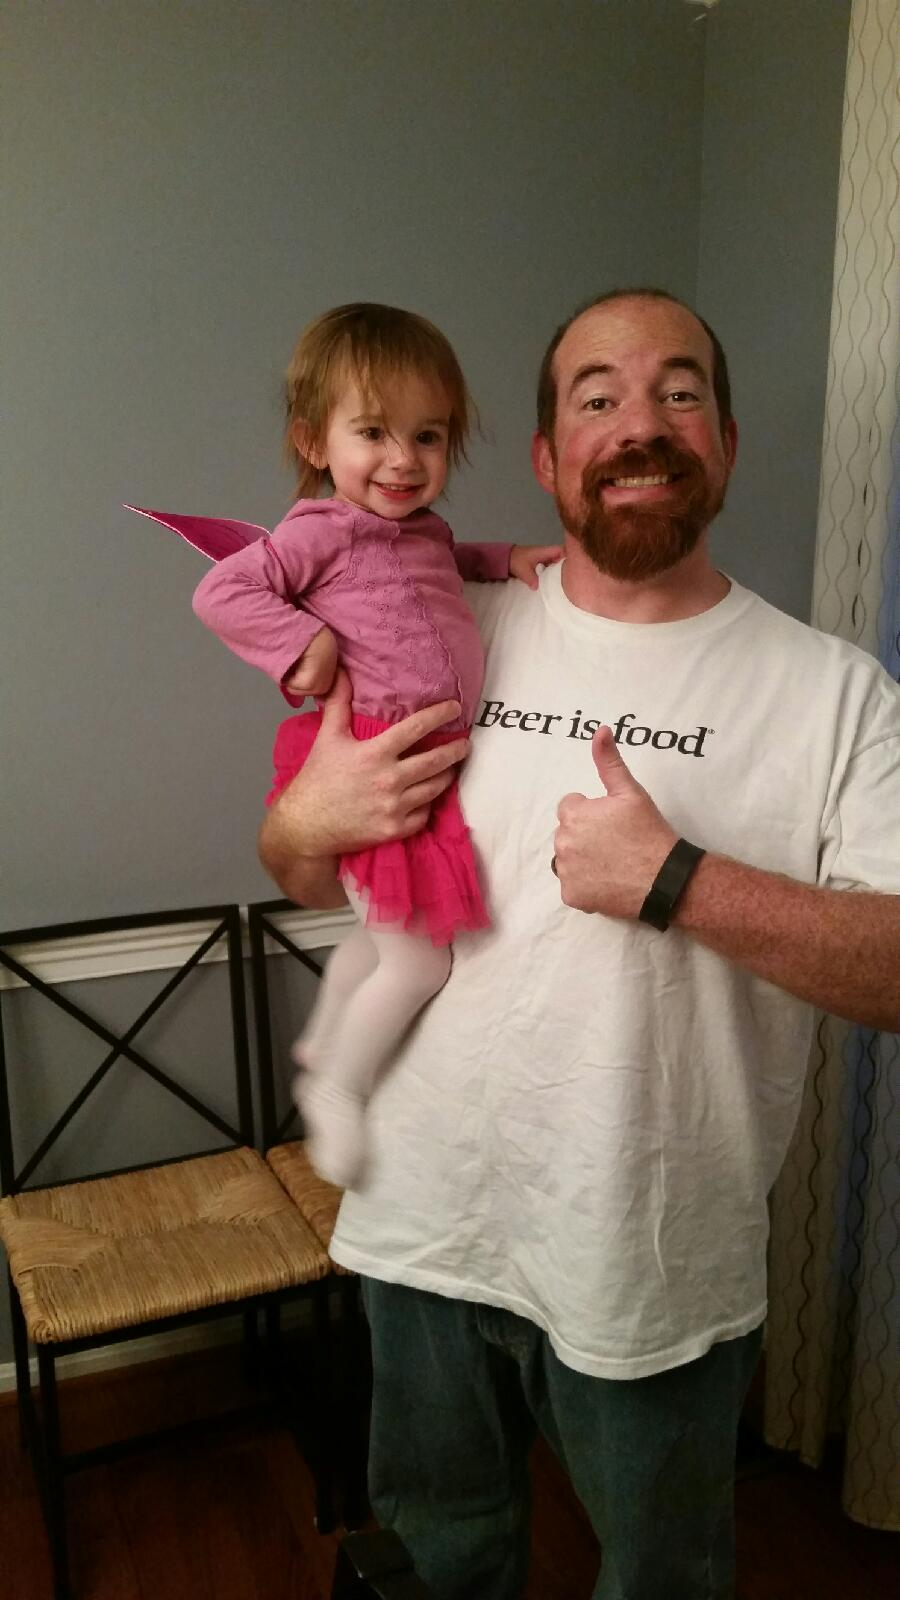 Cece went as a butterfly, Daddy went as a beer loving Daddy.